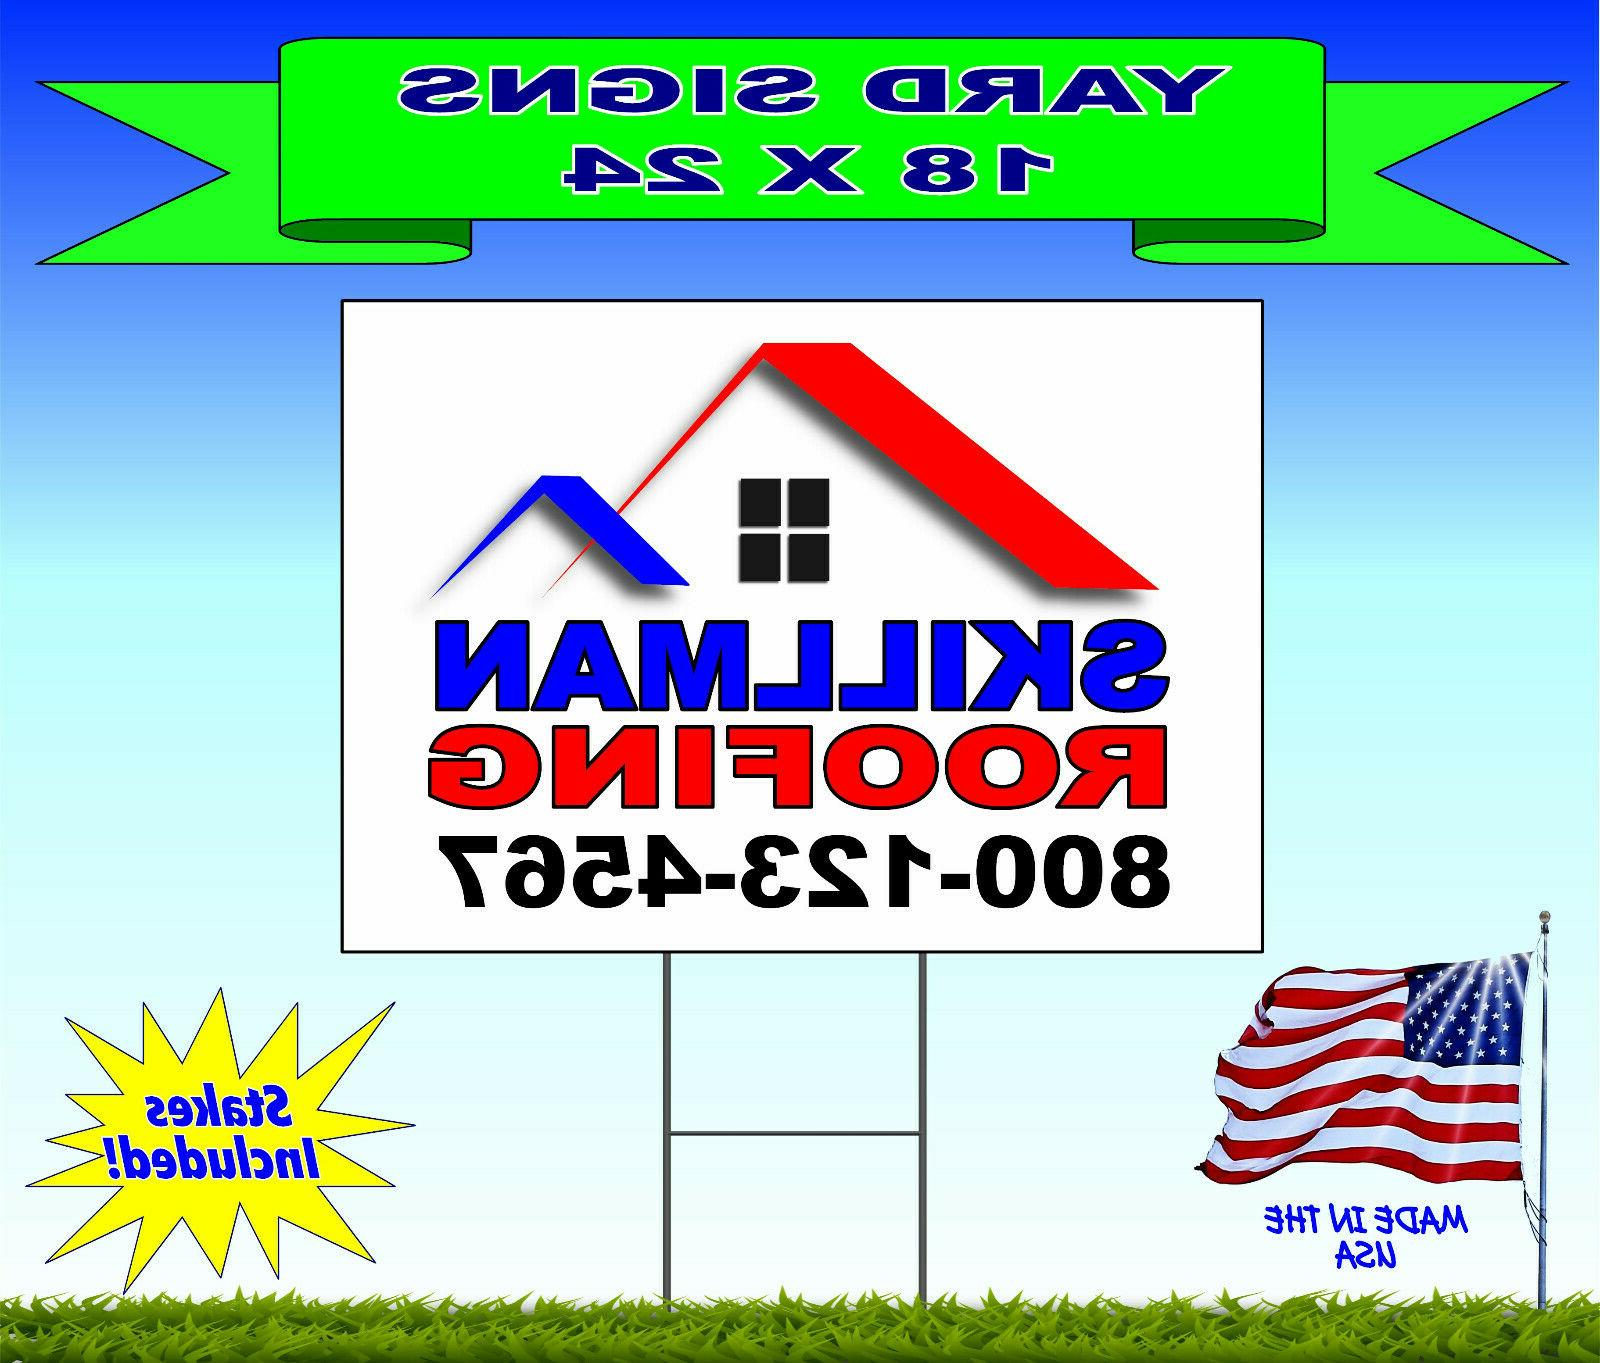 10 - 18x24 Yard Signs - Full - 2 Sided Included!